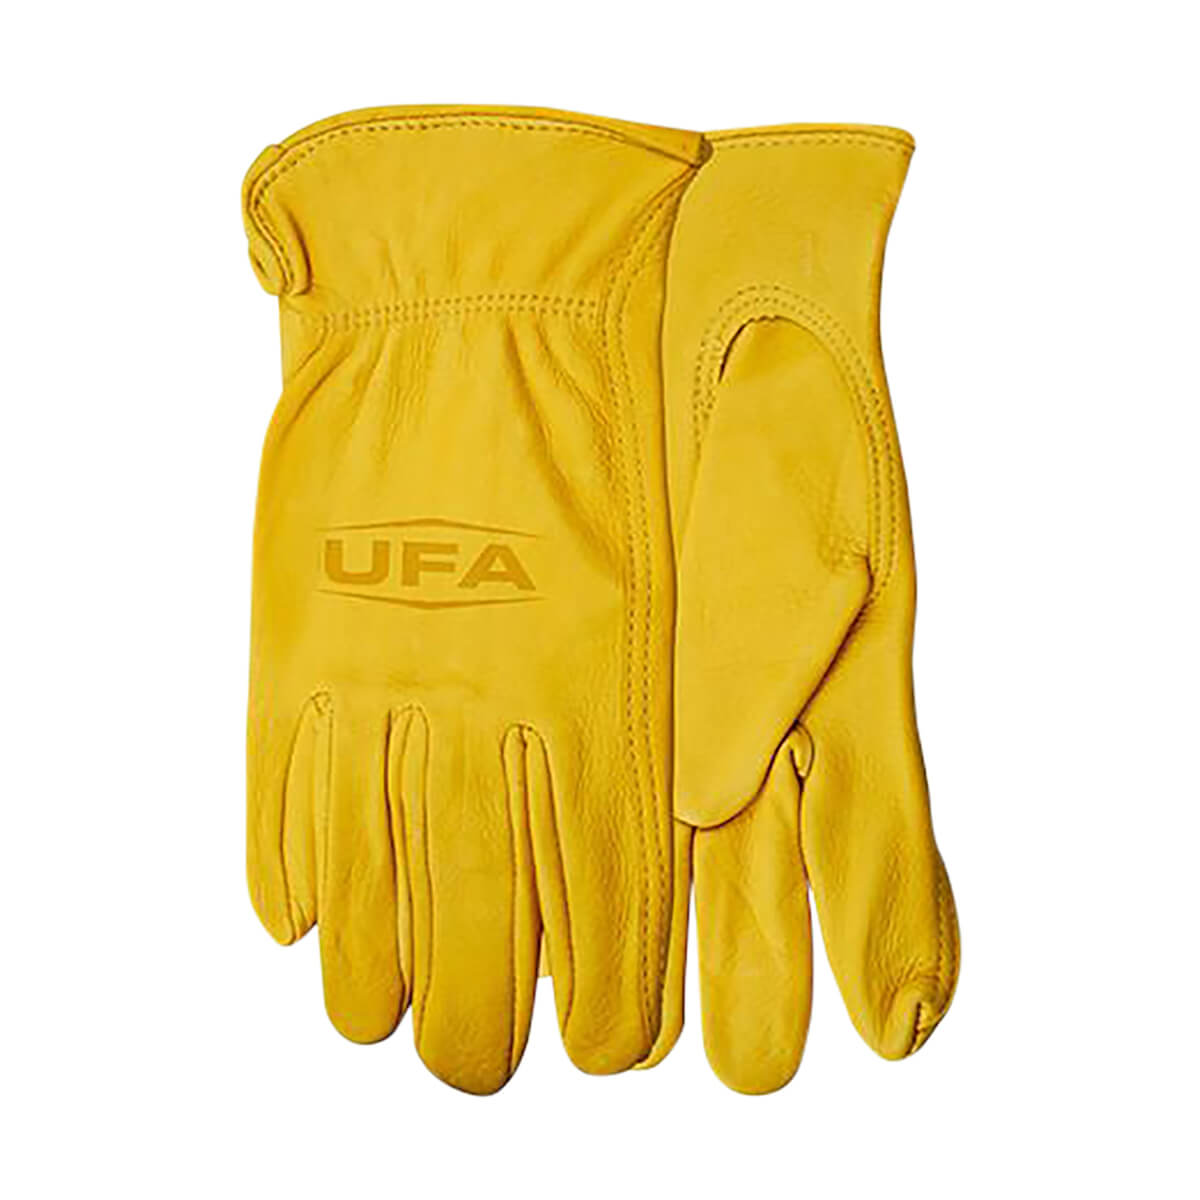 UFA Women's Premium Deerskin Leather Gloves